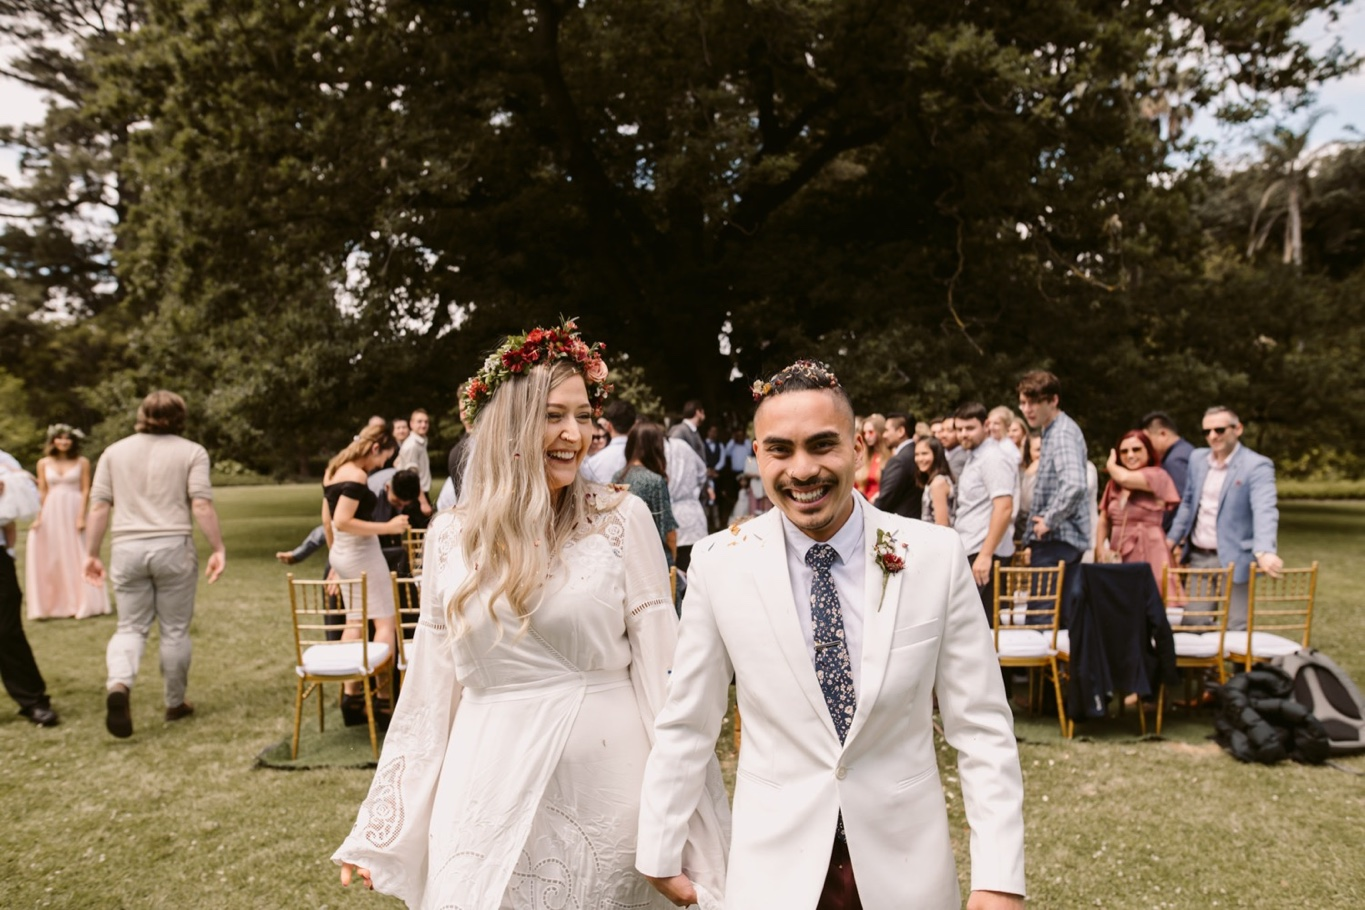 Gather and Tailor Melbourne Wedding Photography-151.jpg